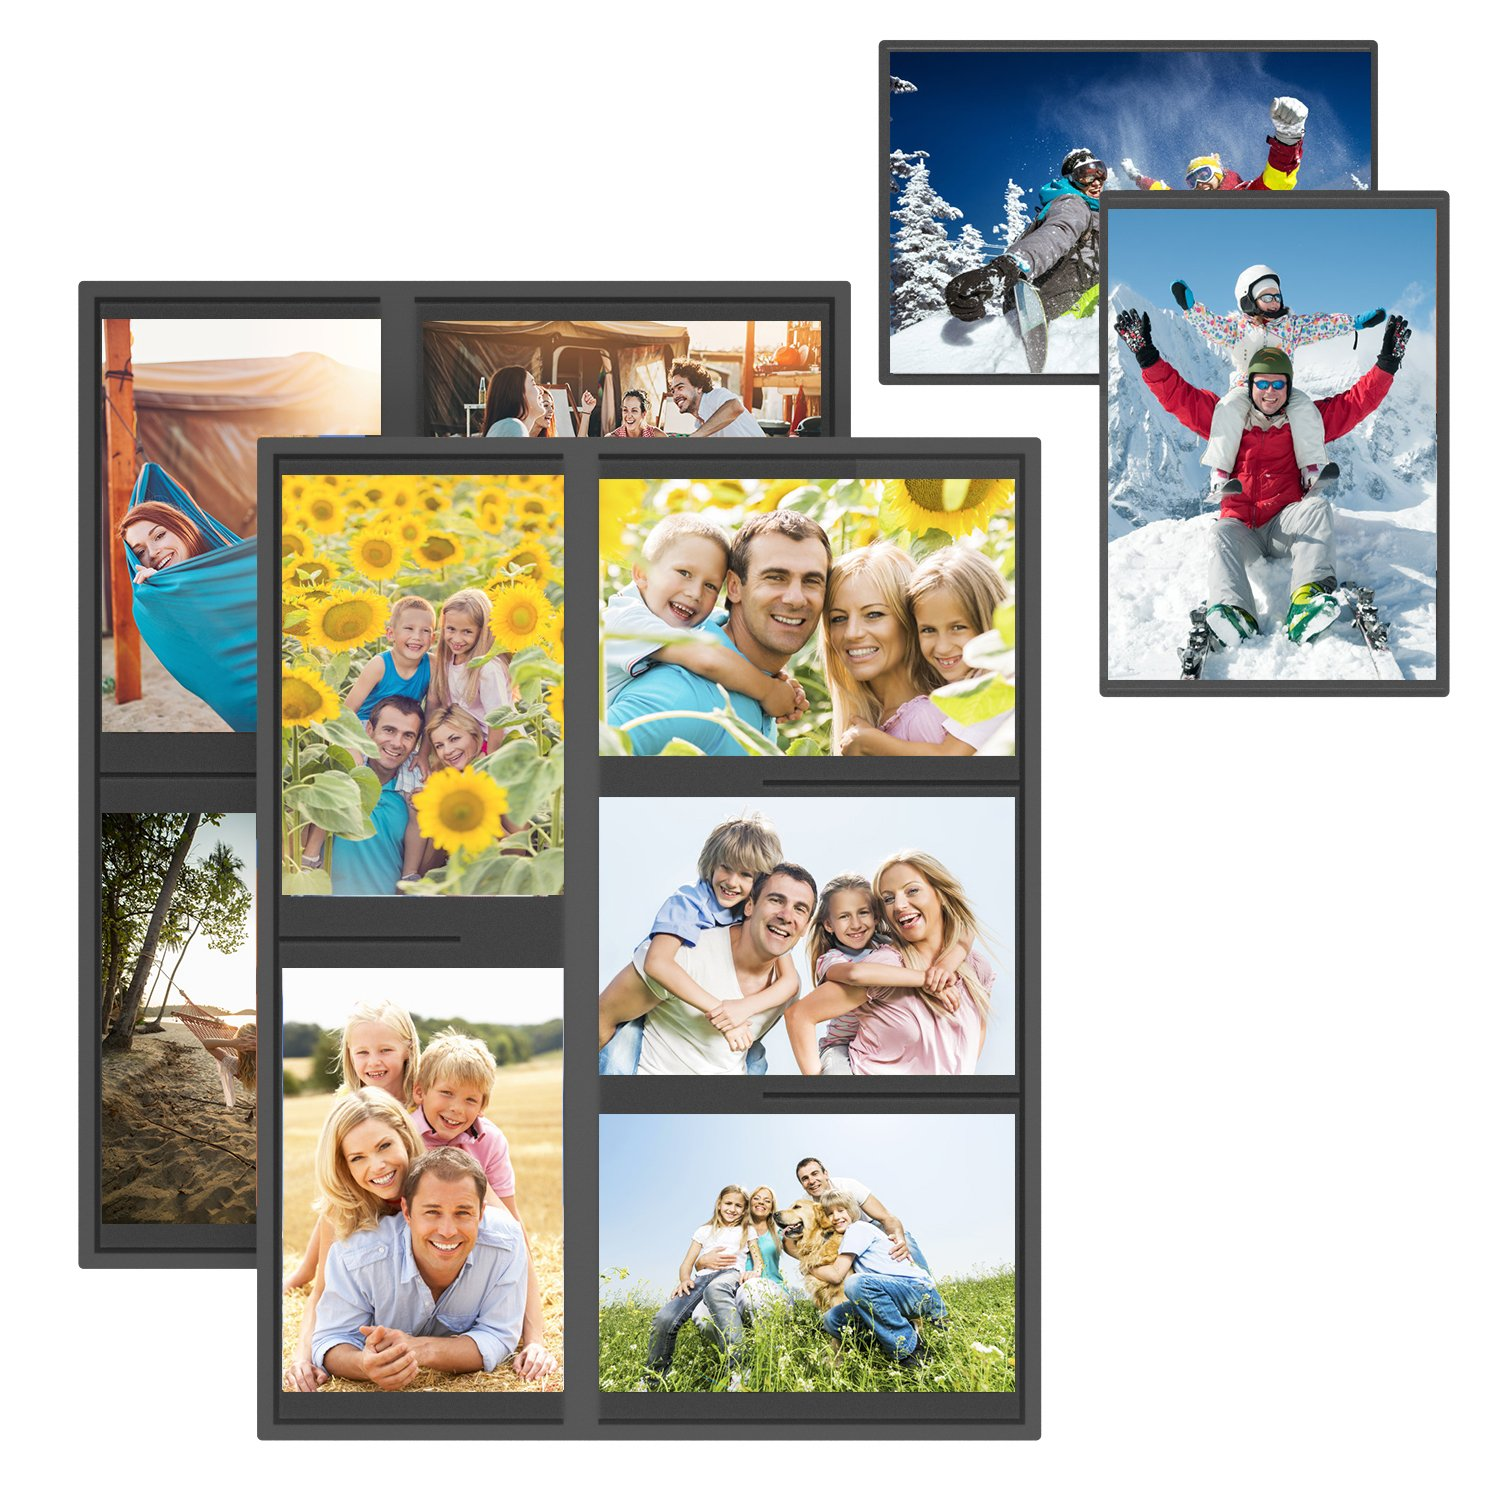 Unitystar 2 Pack Magnetic Picture Collage Frame For Refrigerator